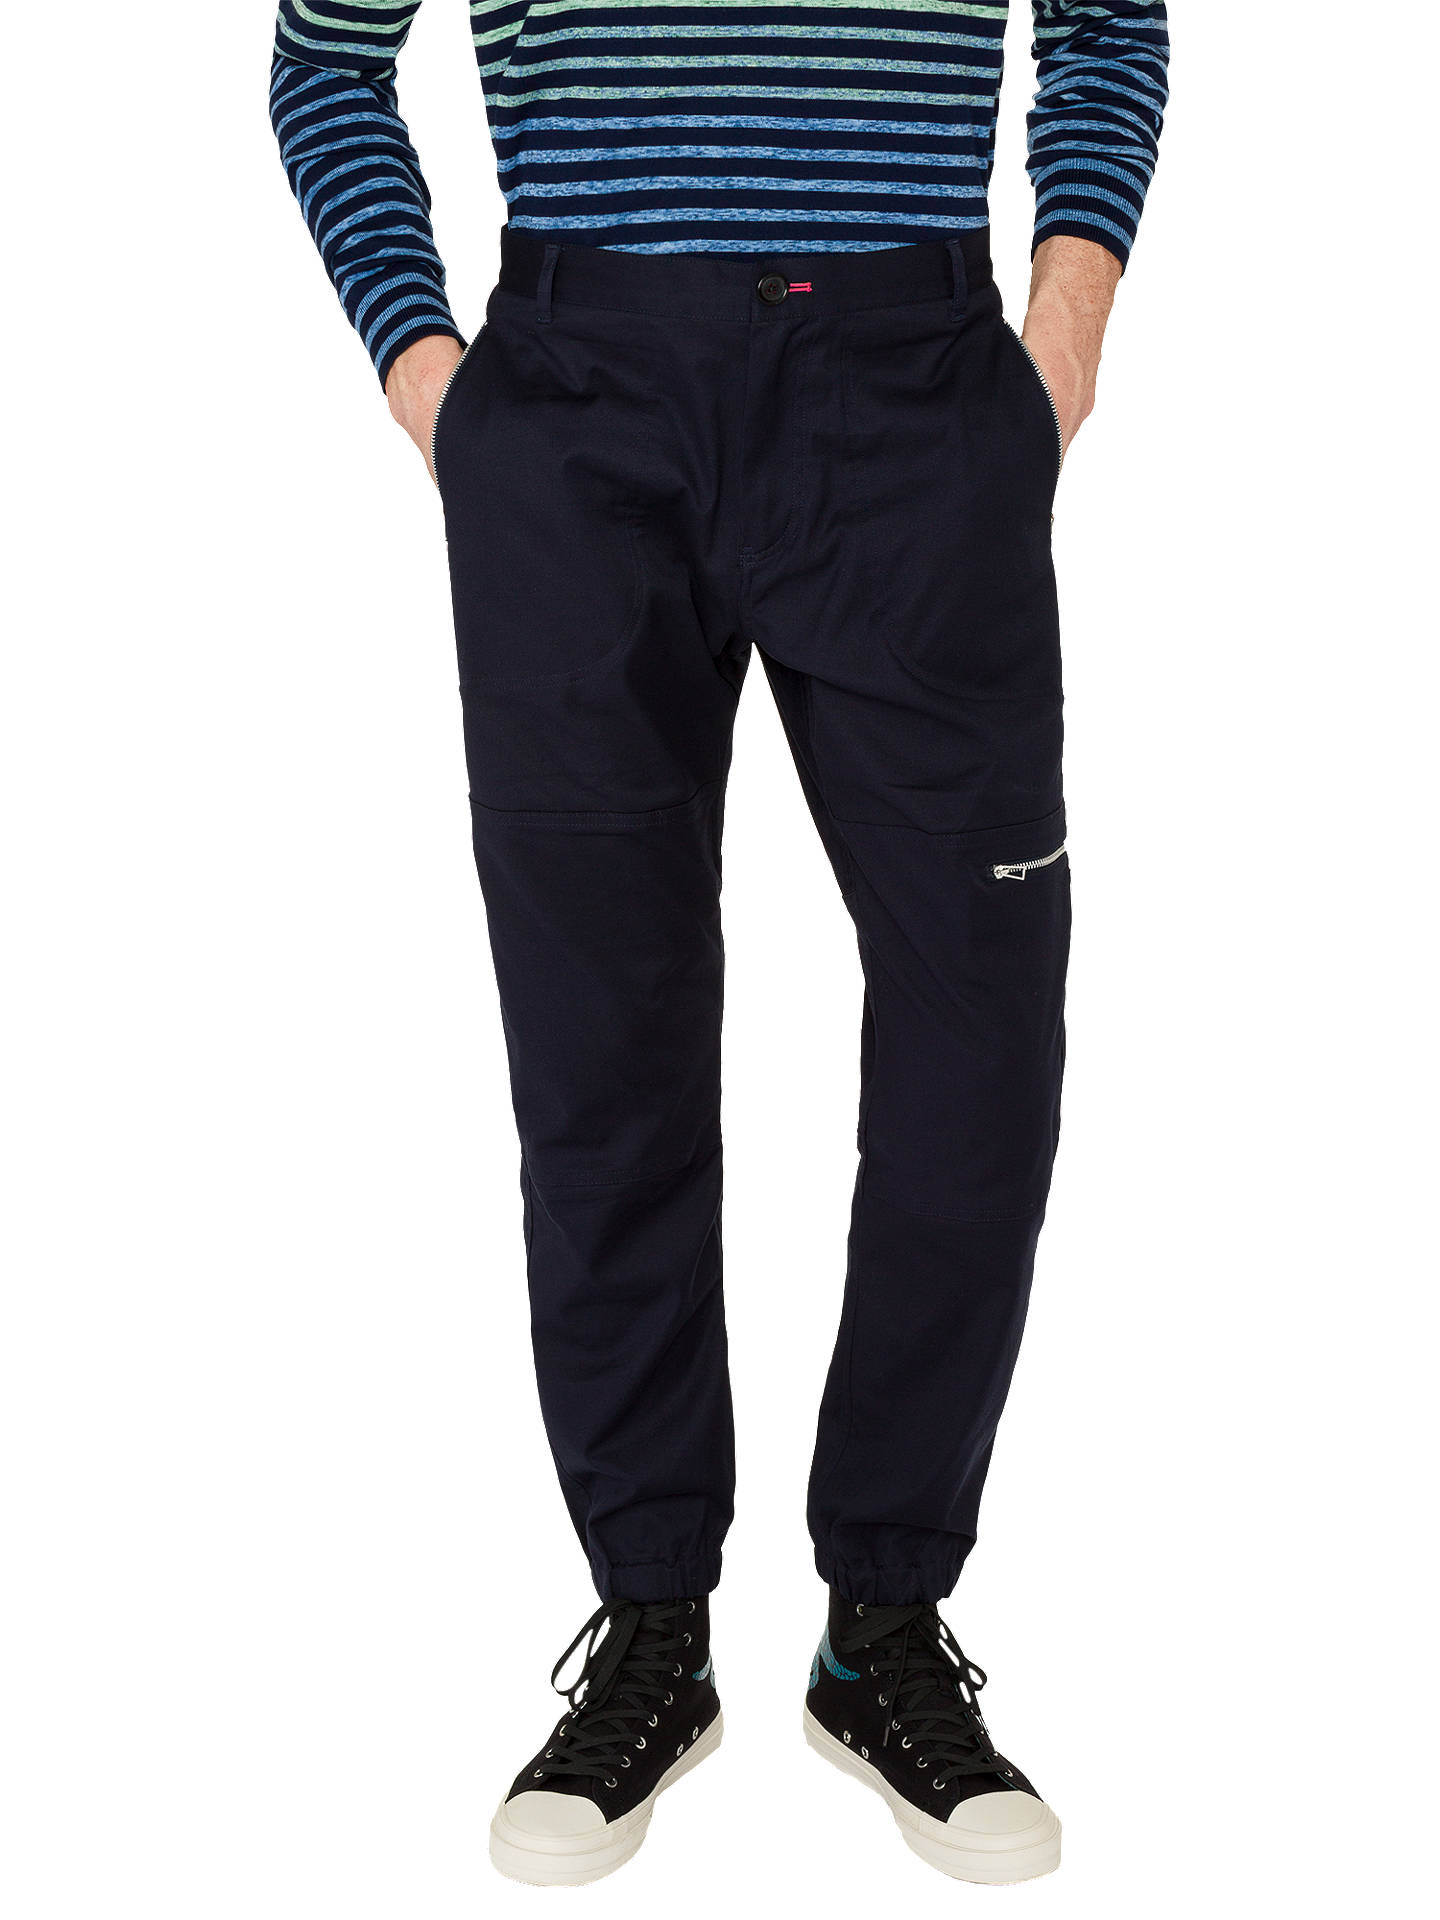 Buy PS Paul Smith Cotton Flight Trousers, Navy, 30R Online at johnlewis.com